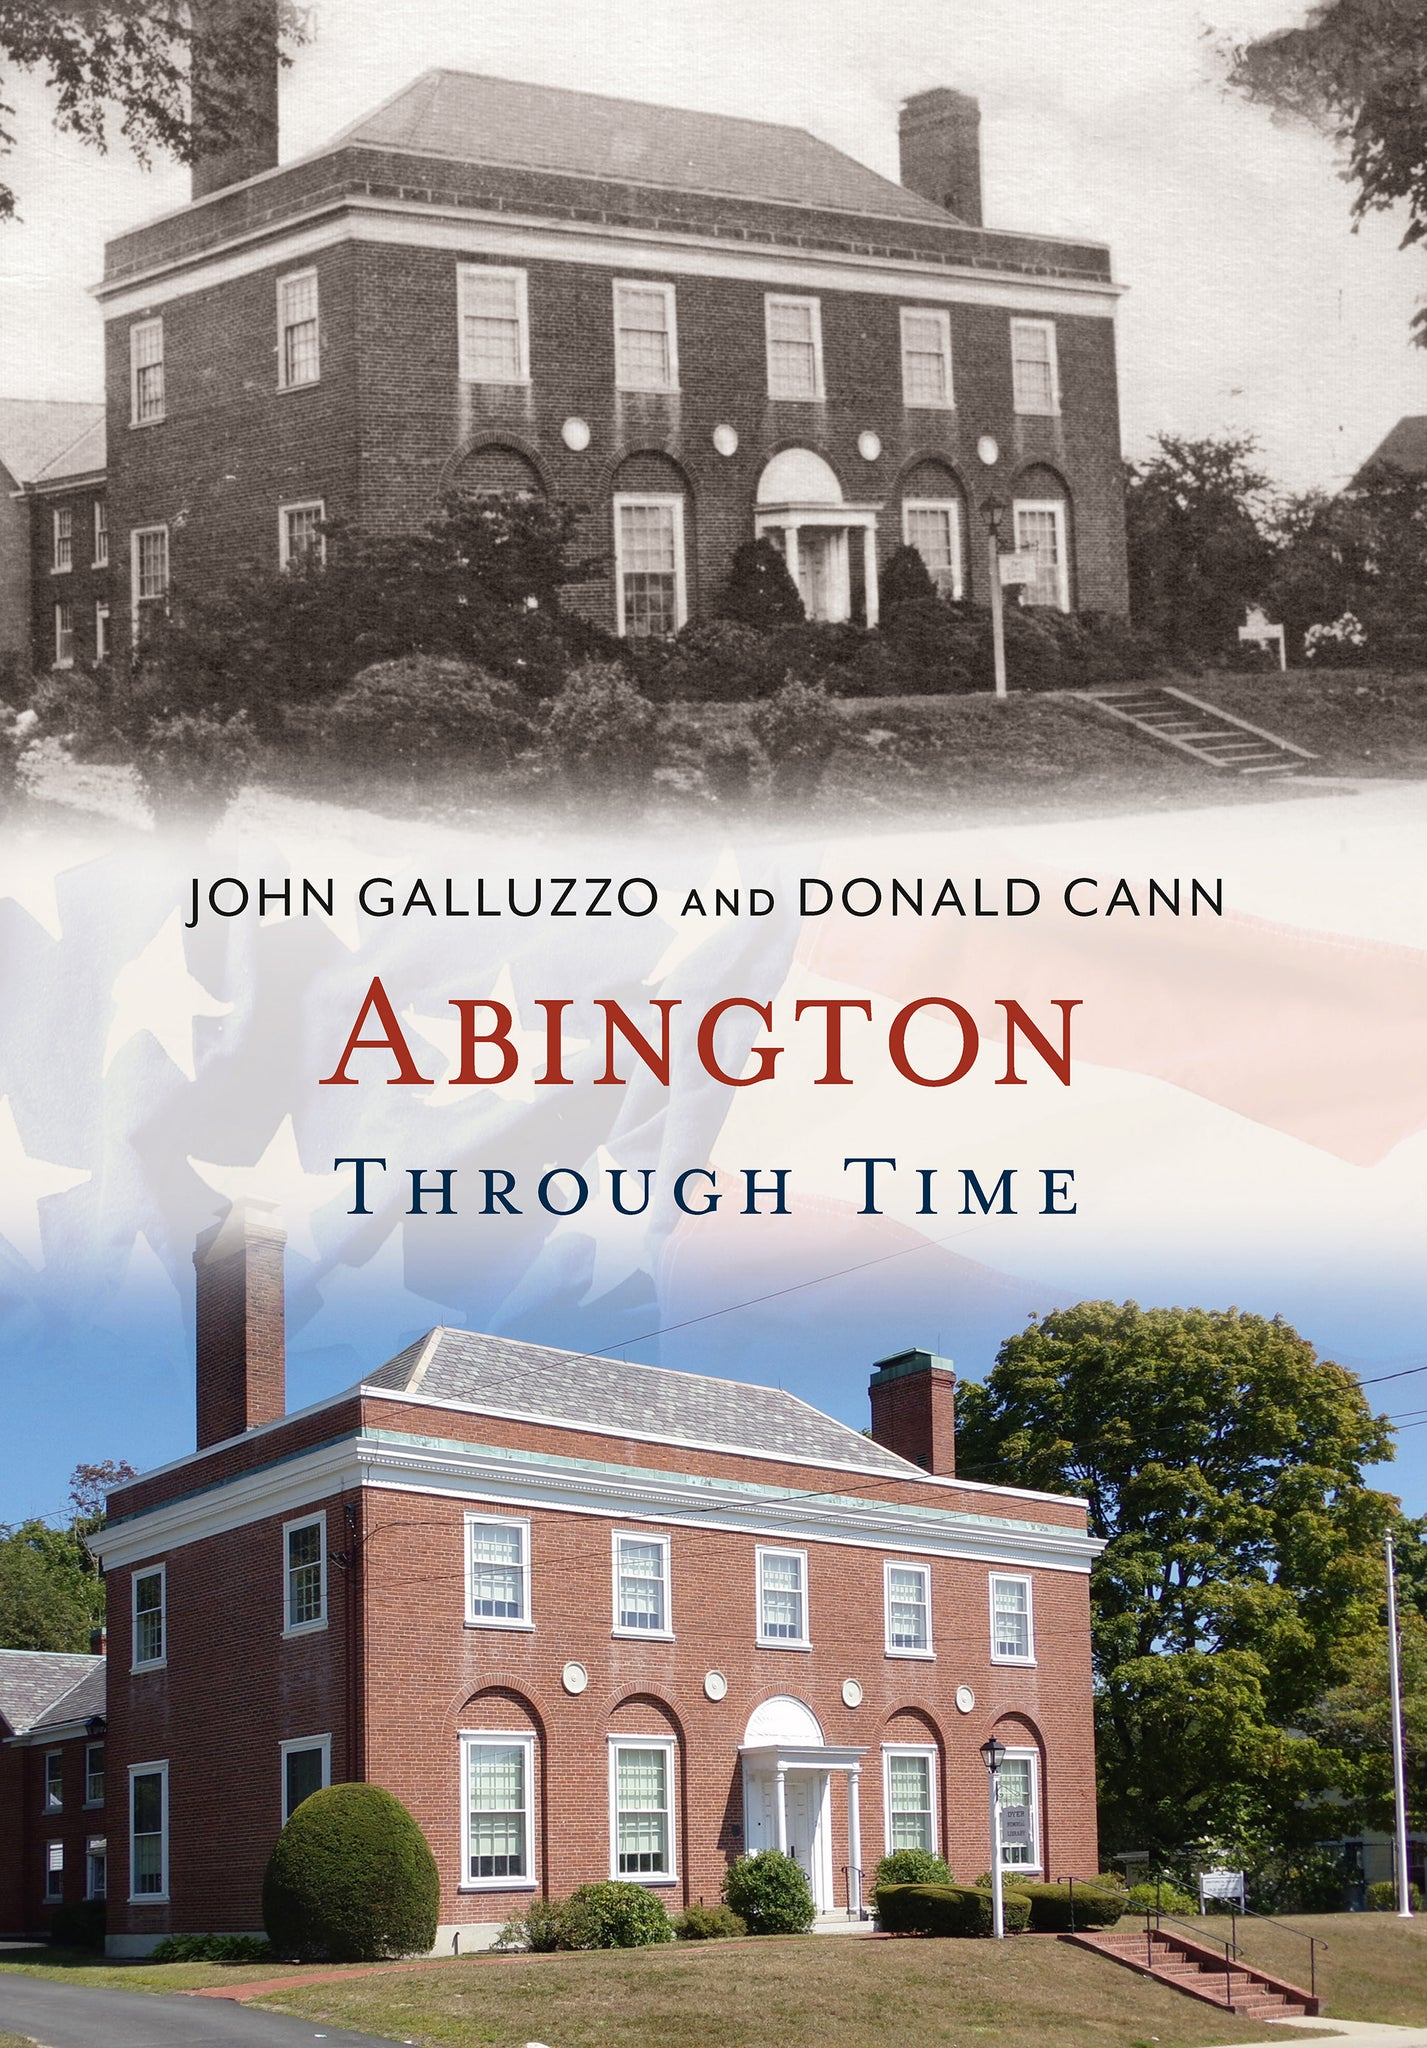 Abington Through Time - available now from America Through Time